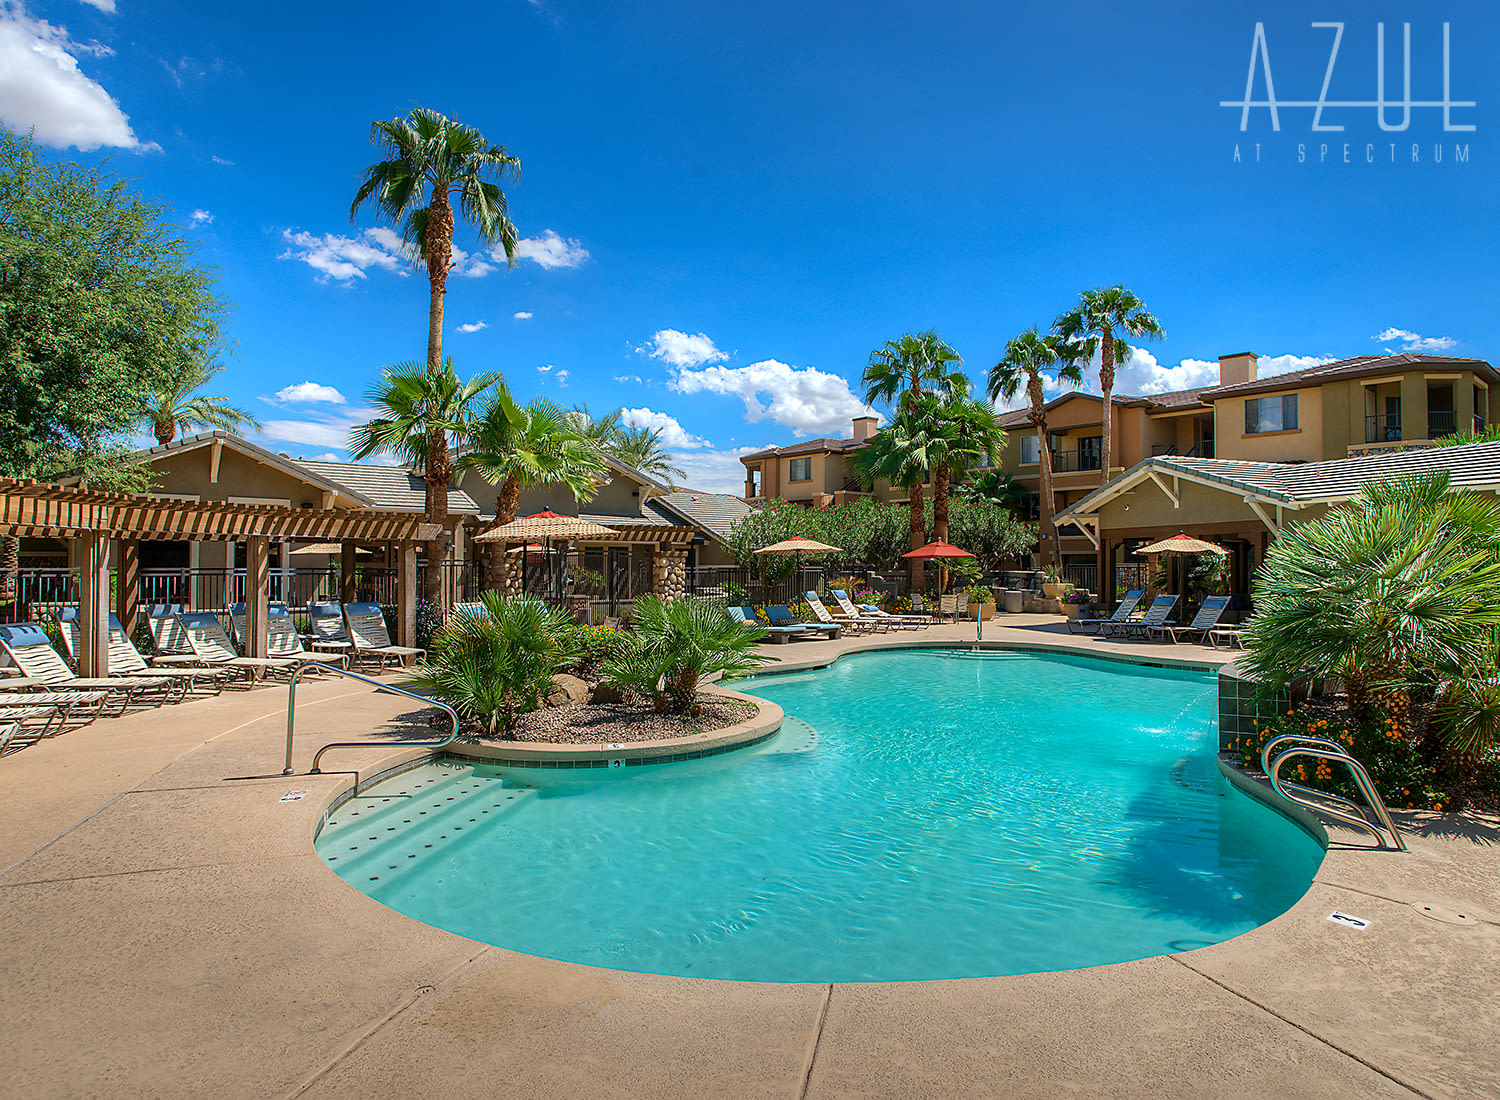 Gilbert Az Apartments Off Val Vista Dr Borrego At Spectrum